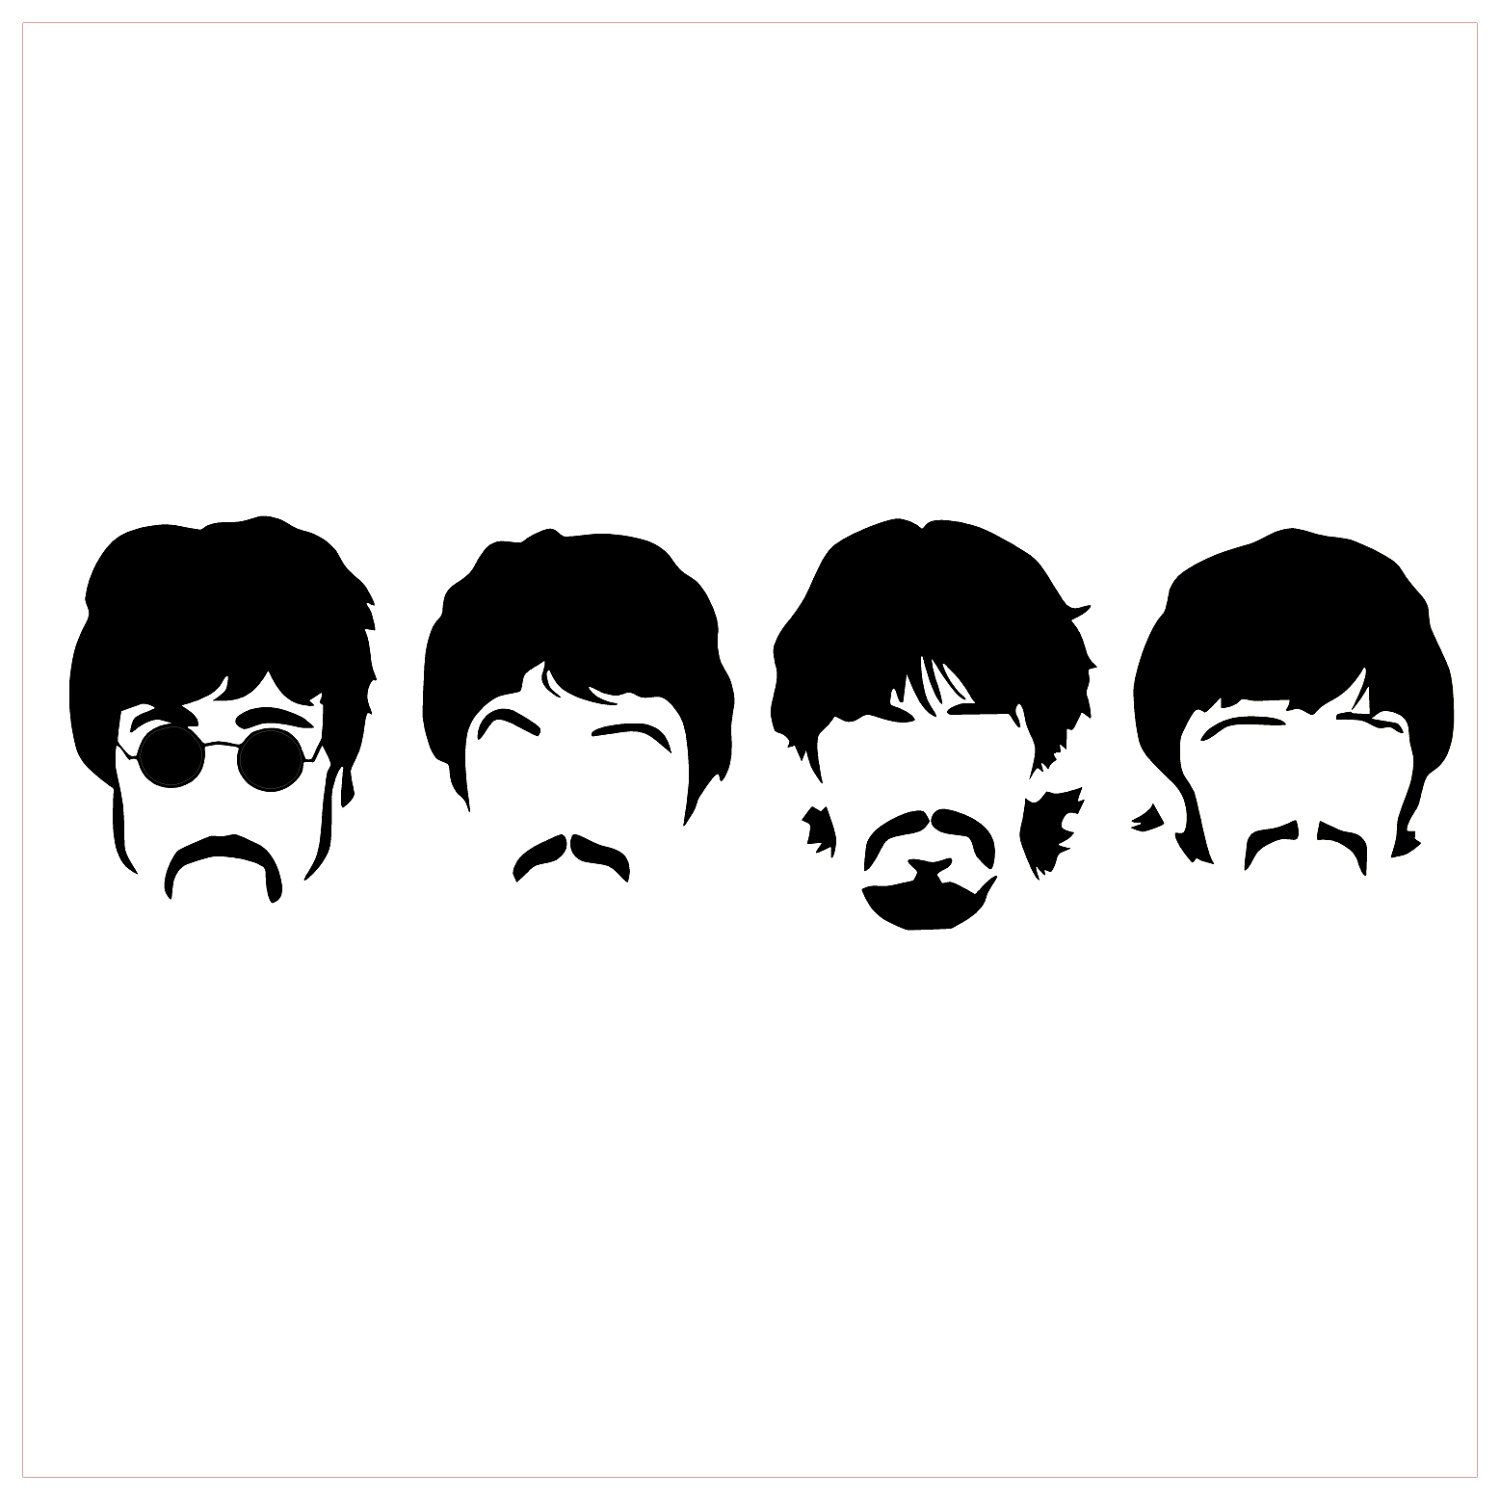 The Beatles Silhouette Band Vinyl Sticker Decal 35 00